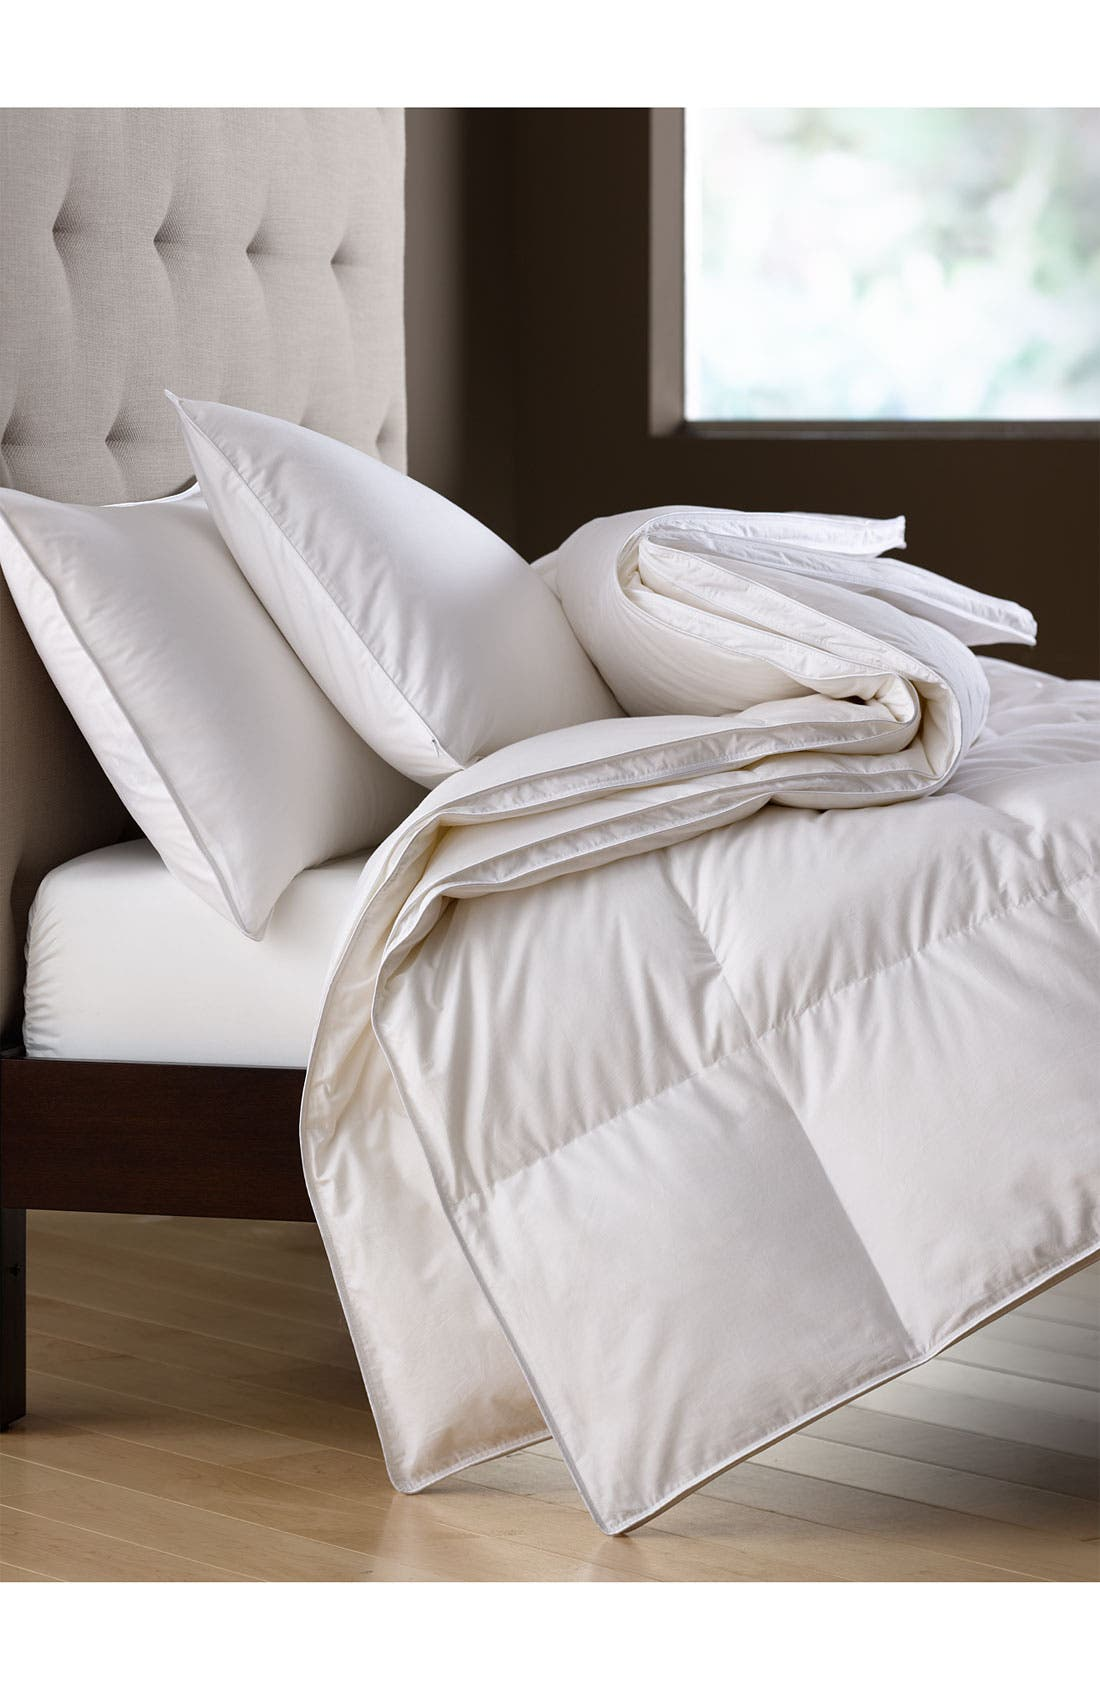 Alternate Image 3  - Nordstrom at Home 400 Thread Count Medium Weight Down Comforter